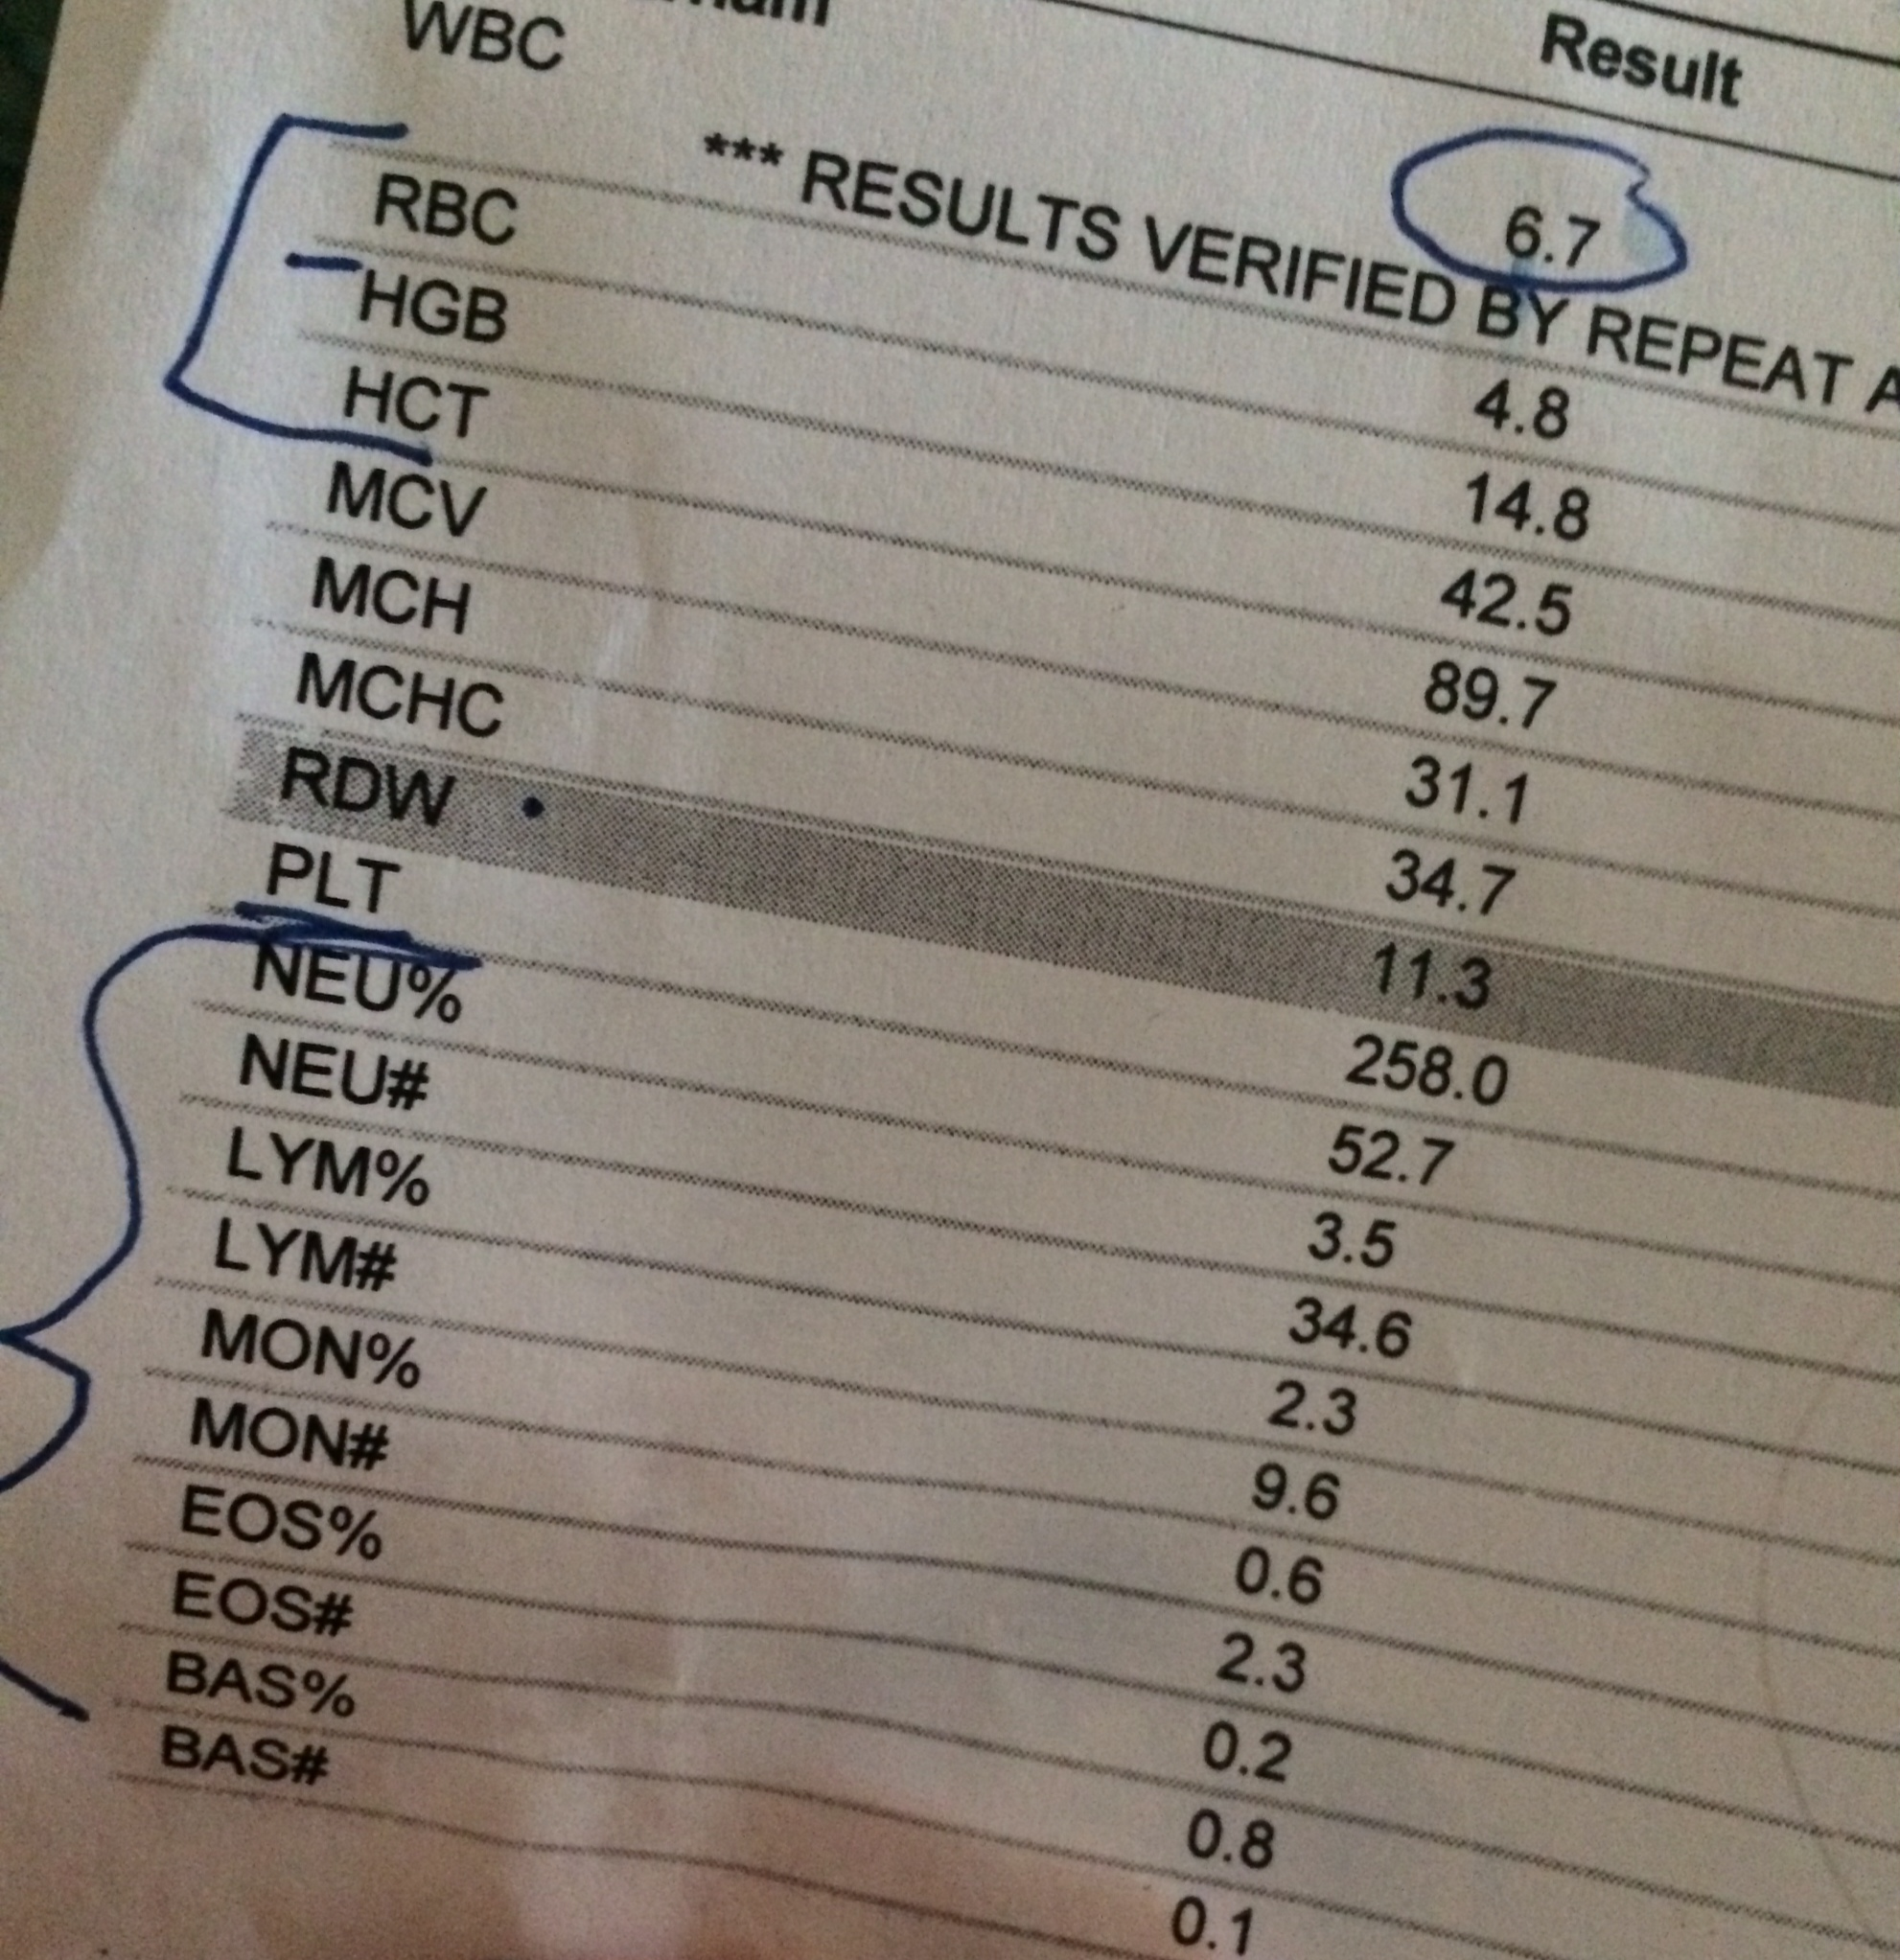 My blood work results